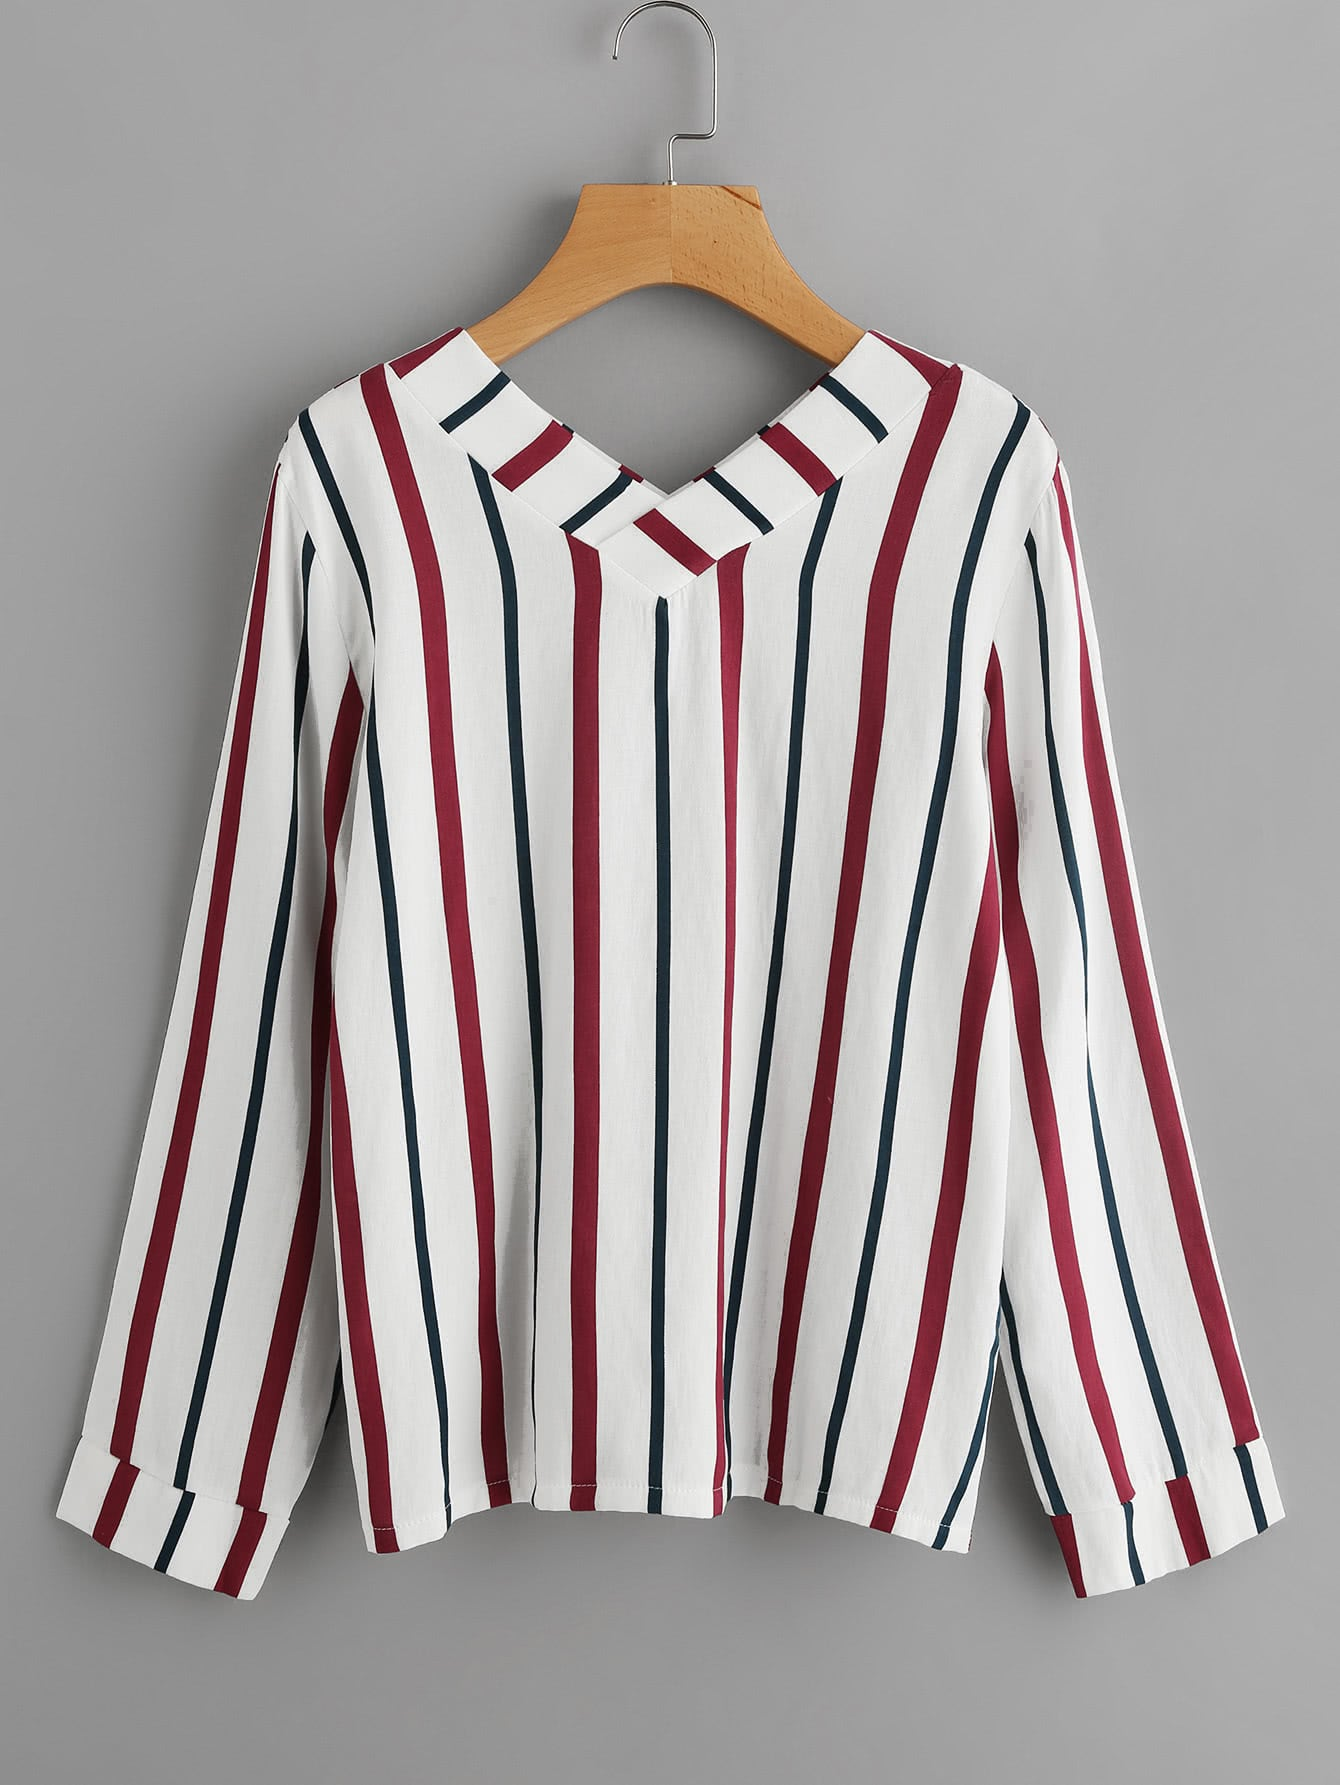 V Neckline Vertical Striped Blouse RBLO170810104